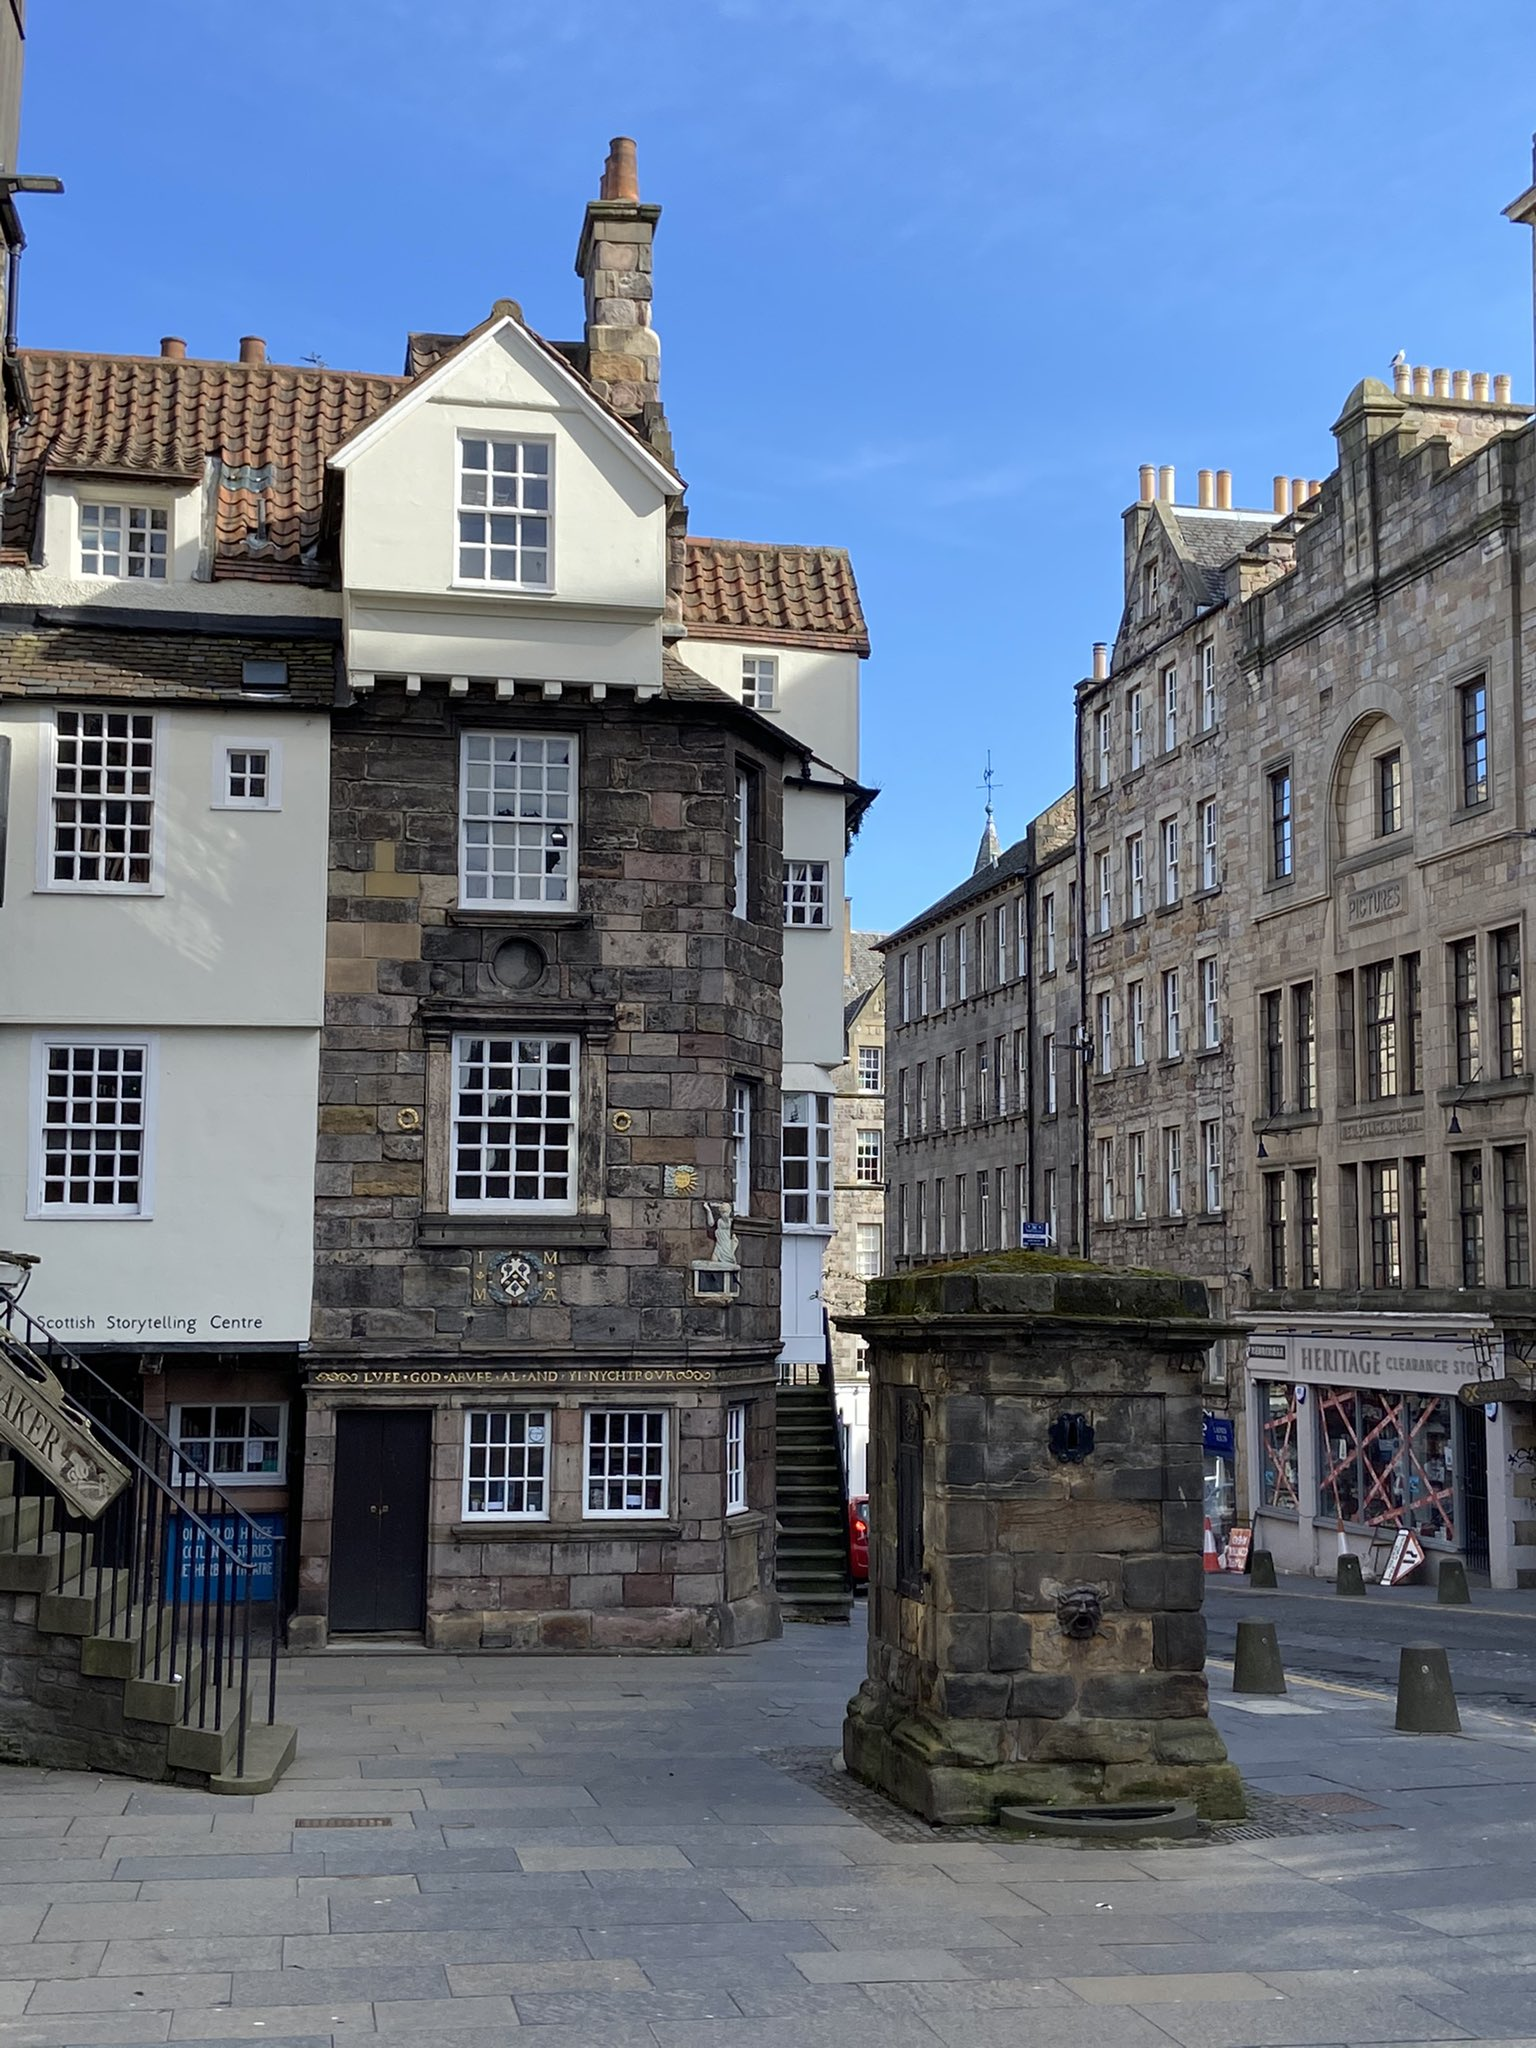 View of John Knox House from the Royal Mile on a sunny day, including the old water fountain on the pavement in front of it.